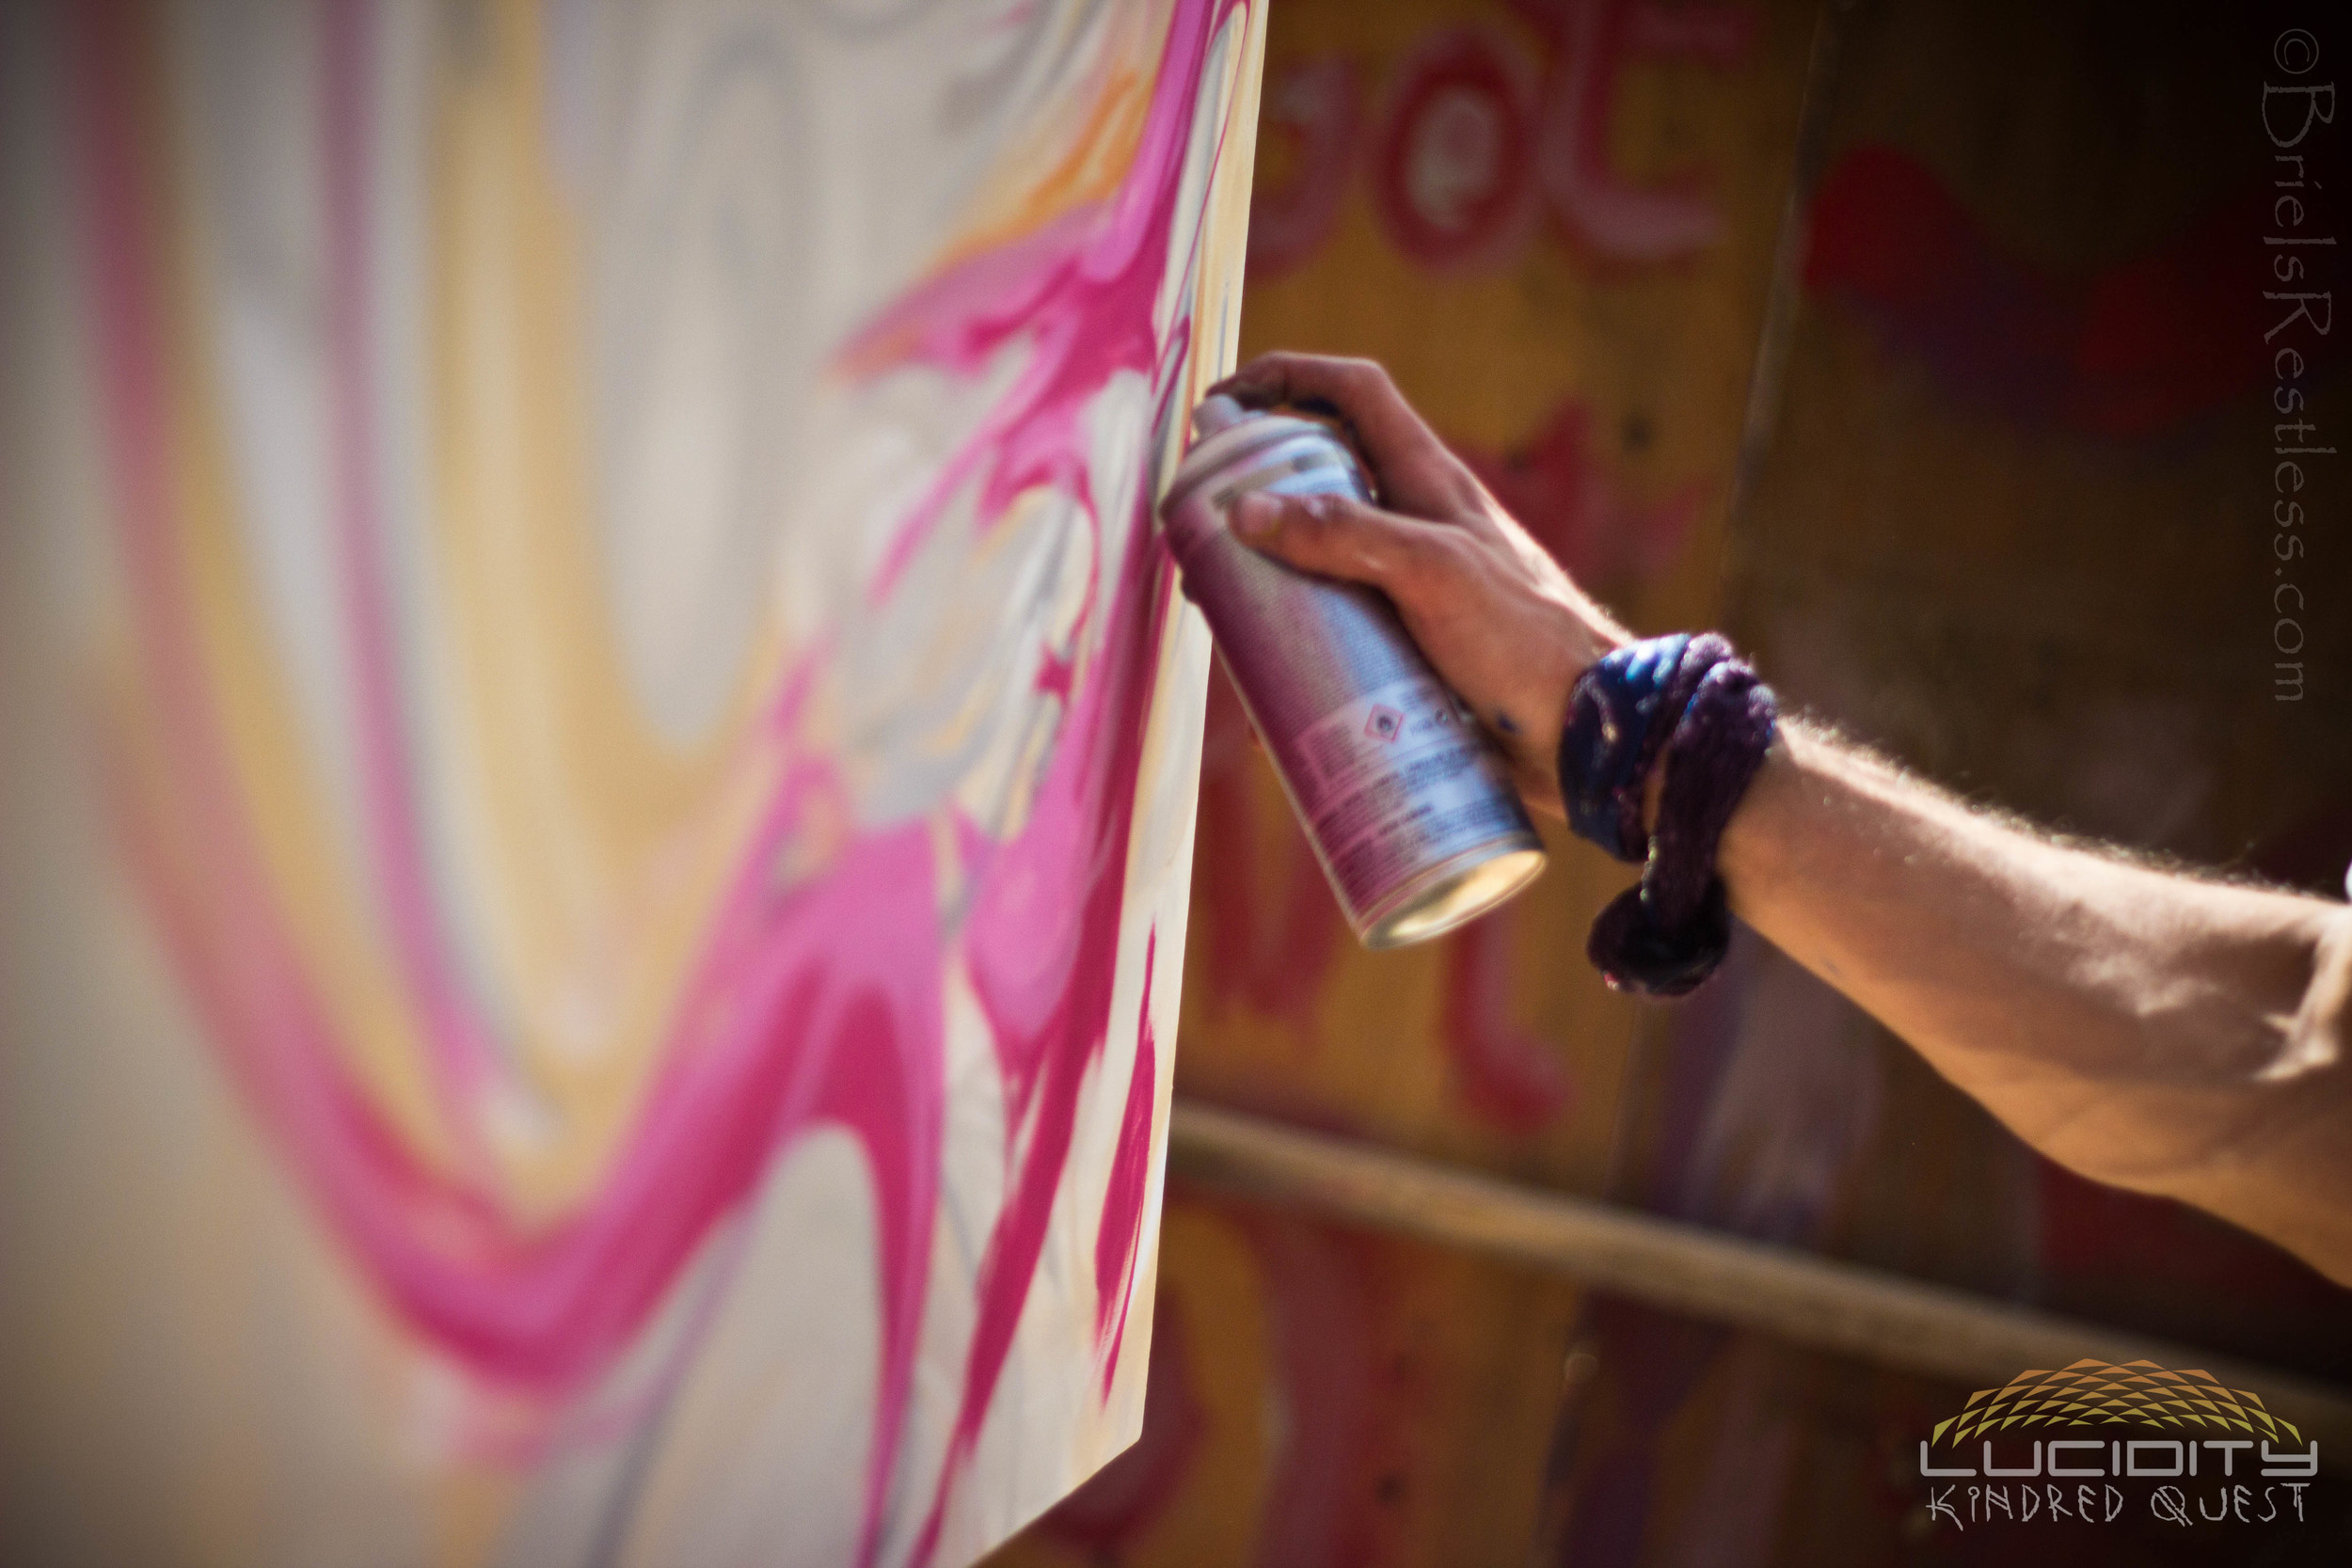 Spray Paint - Live - Tricksters Playground - Luciditiy - Kindred Quest - Build - April 2015 (1 of 1) (1 of 1).jpg